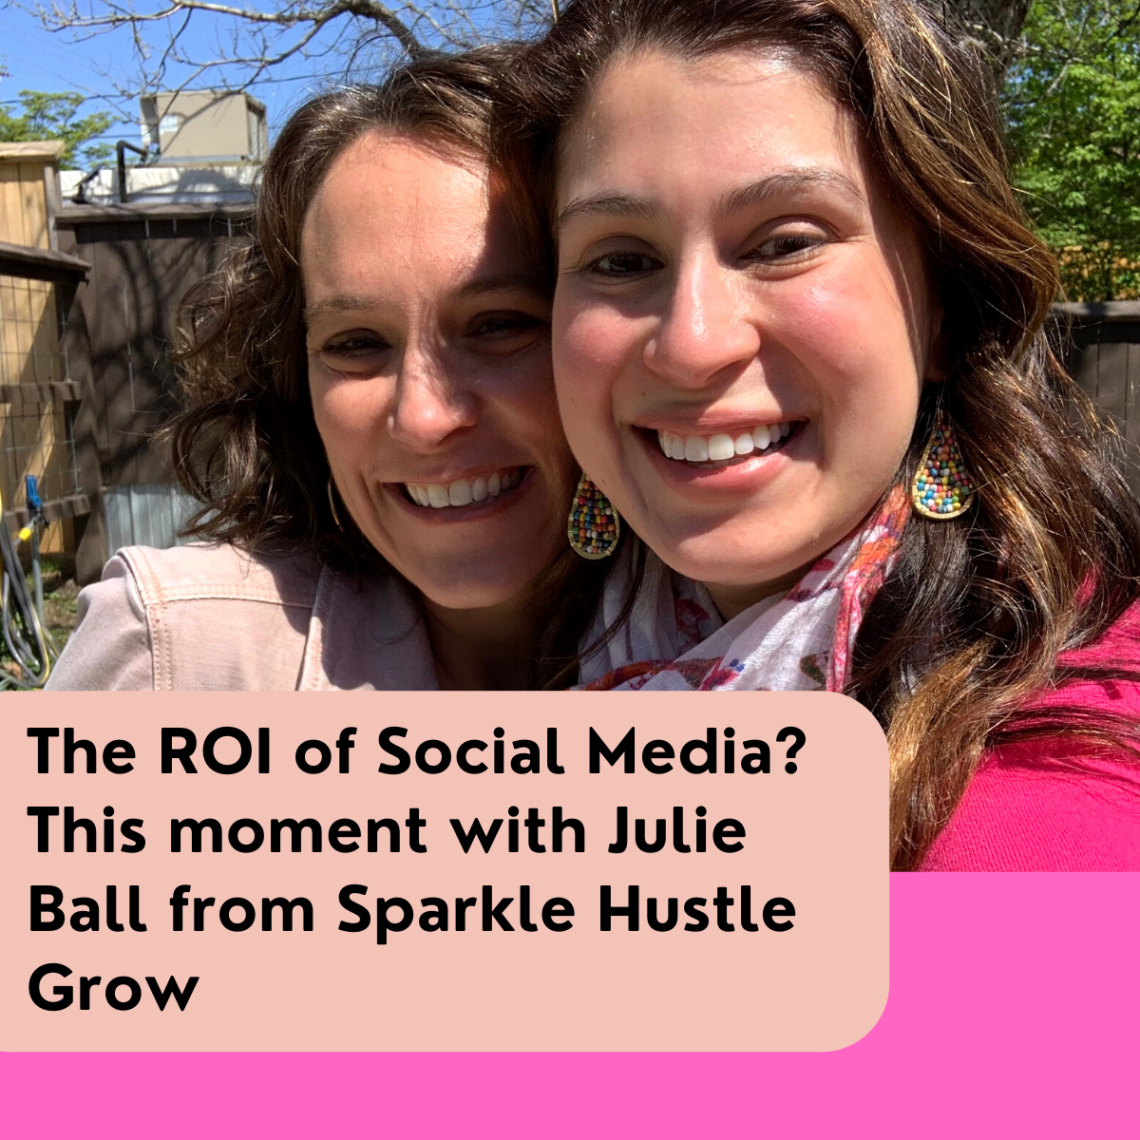 The ROI of Social Media This moment with Julie Ball from Sparkle Hustle Grow